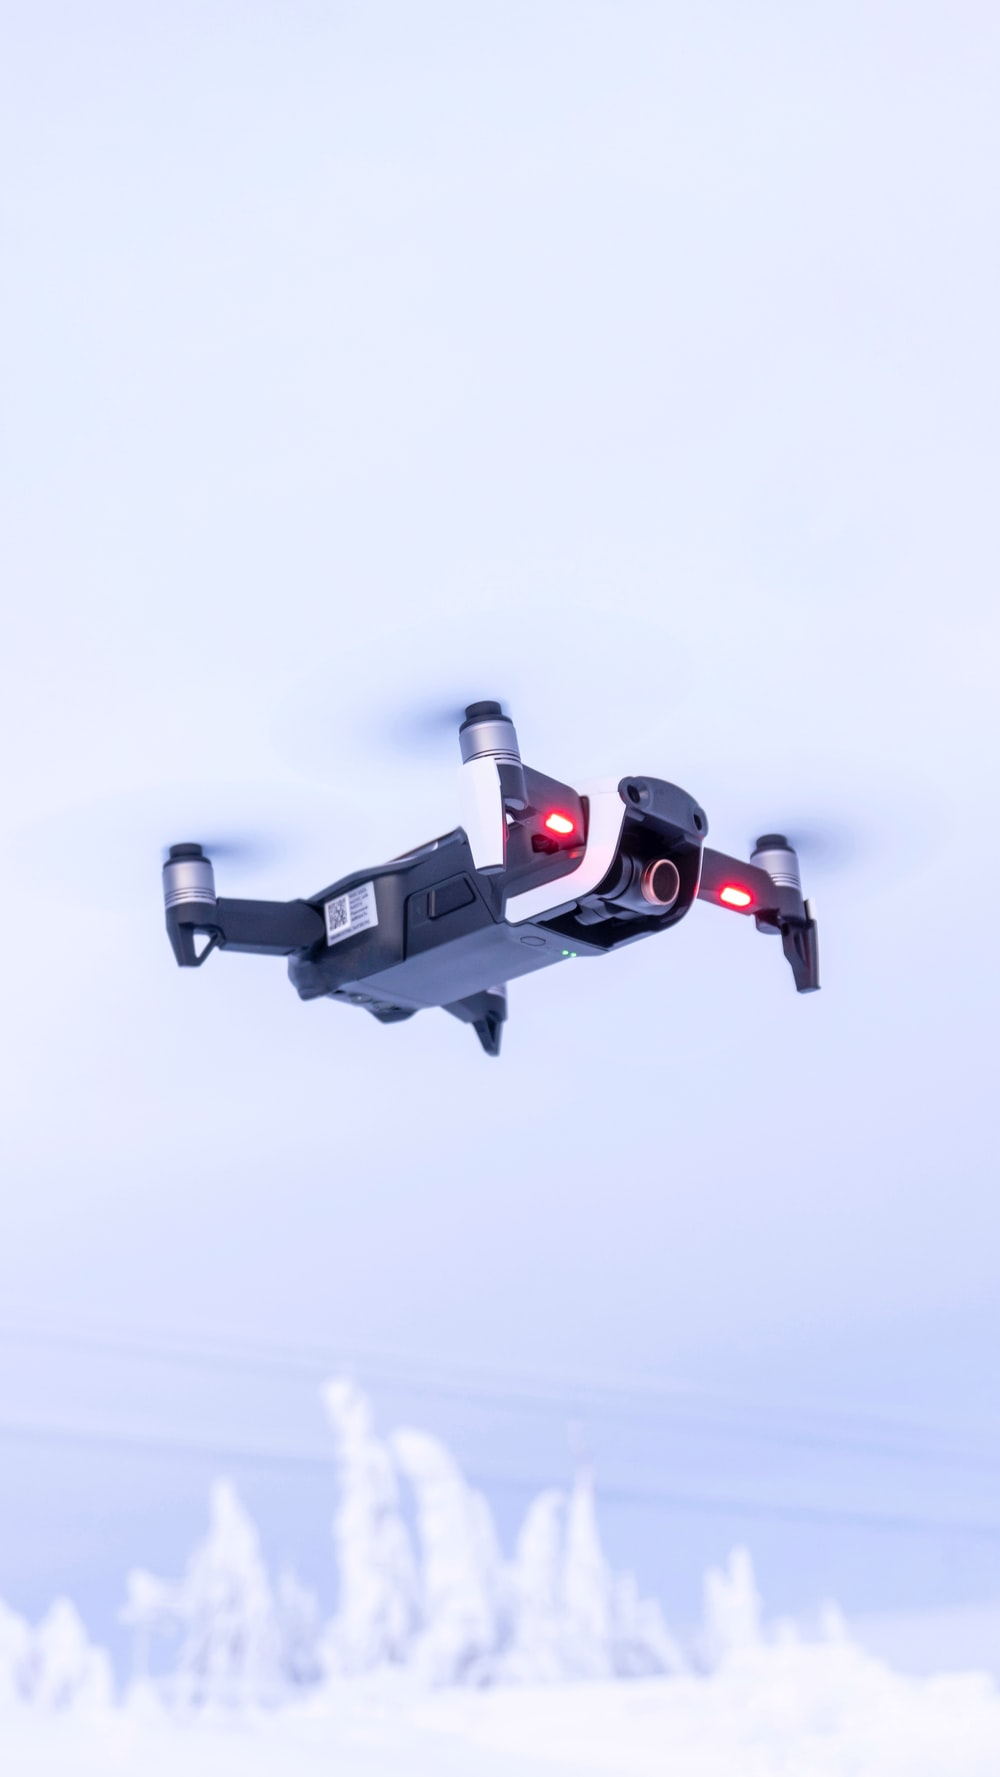 black and red drone flying